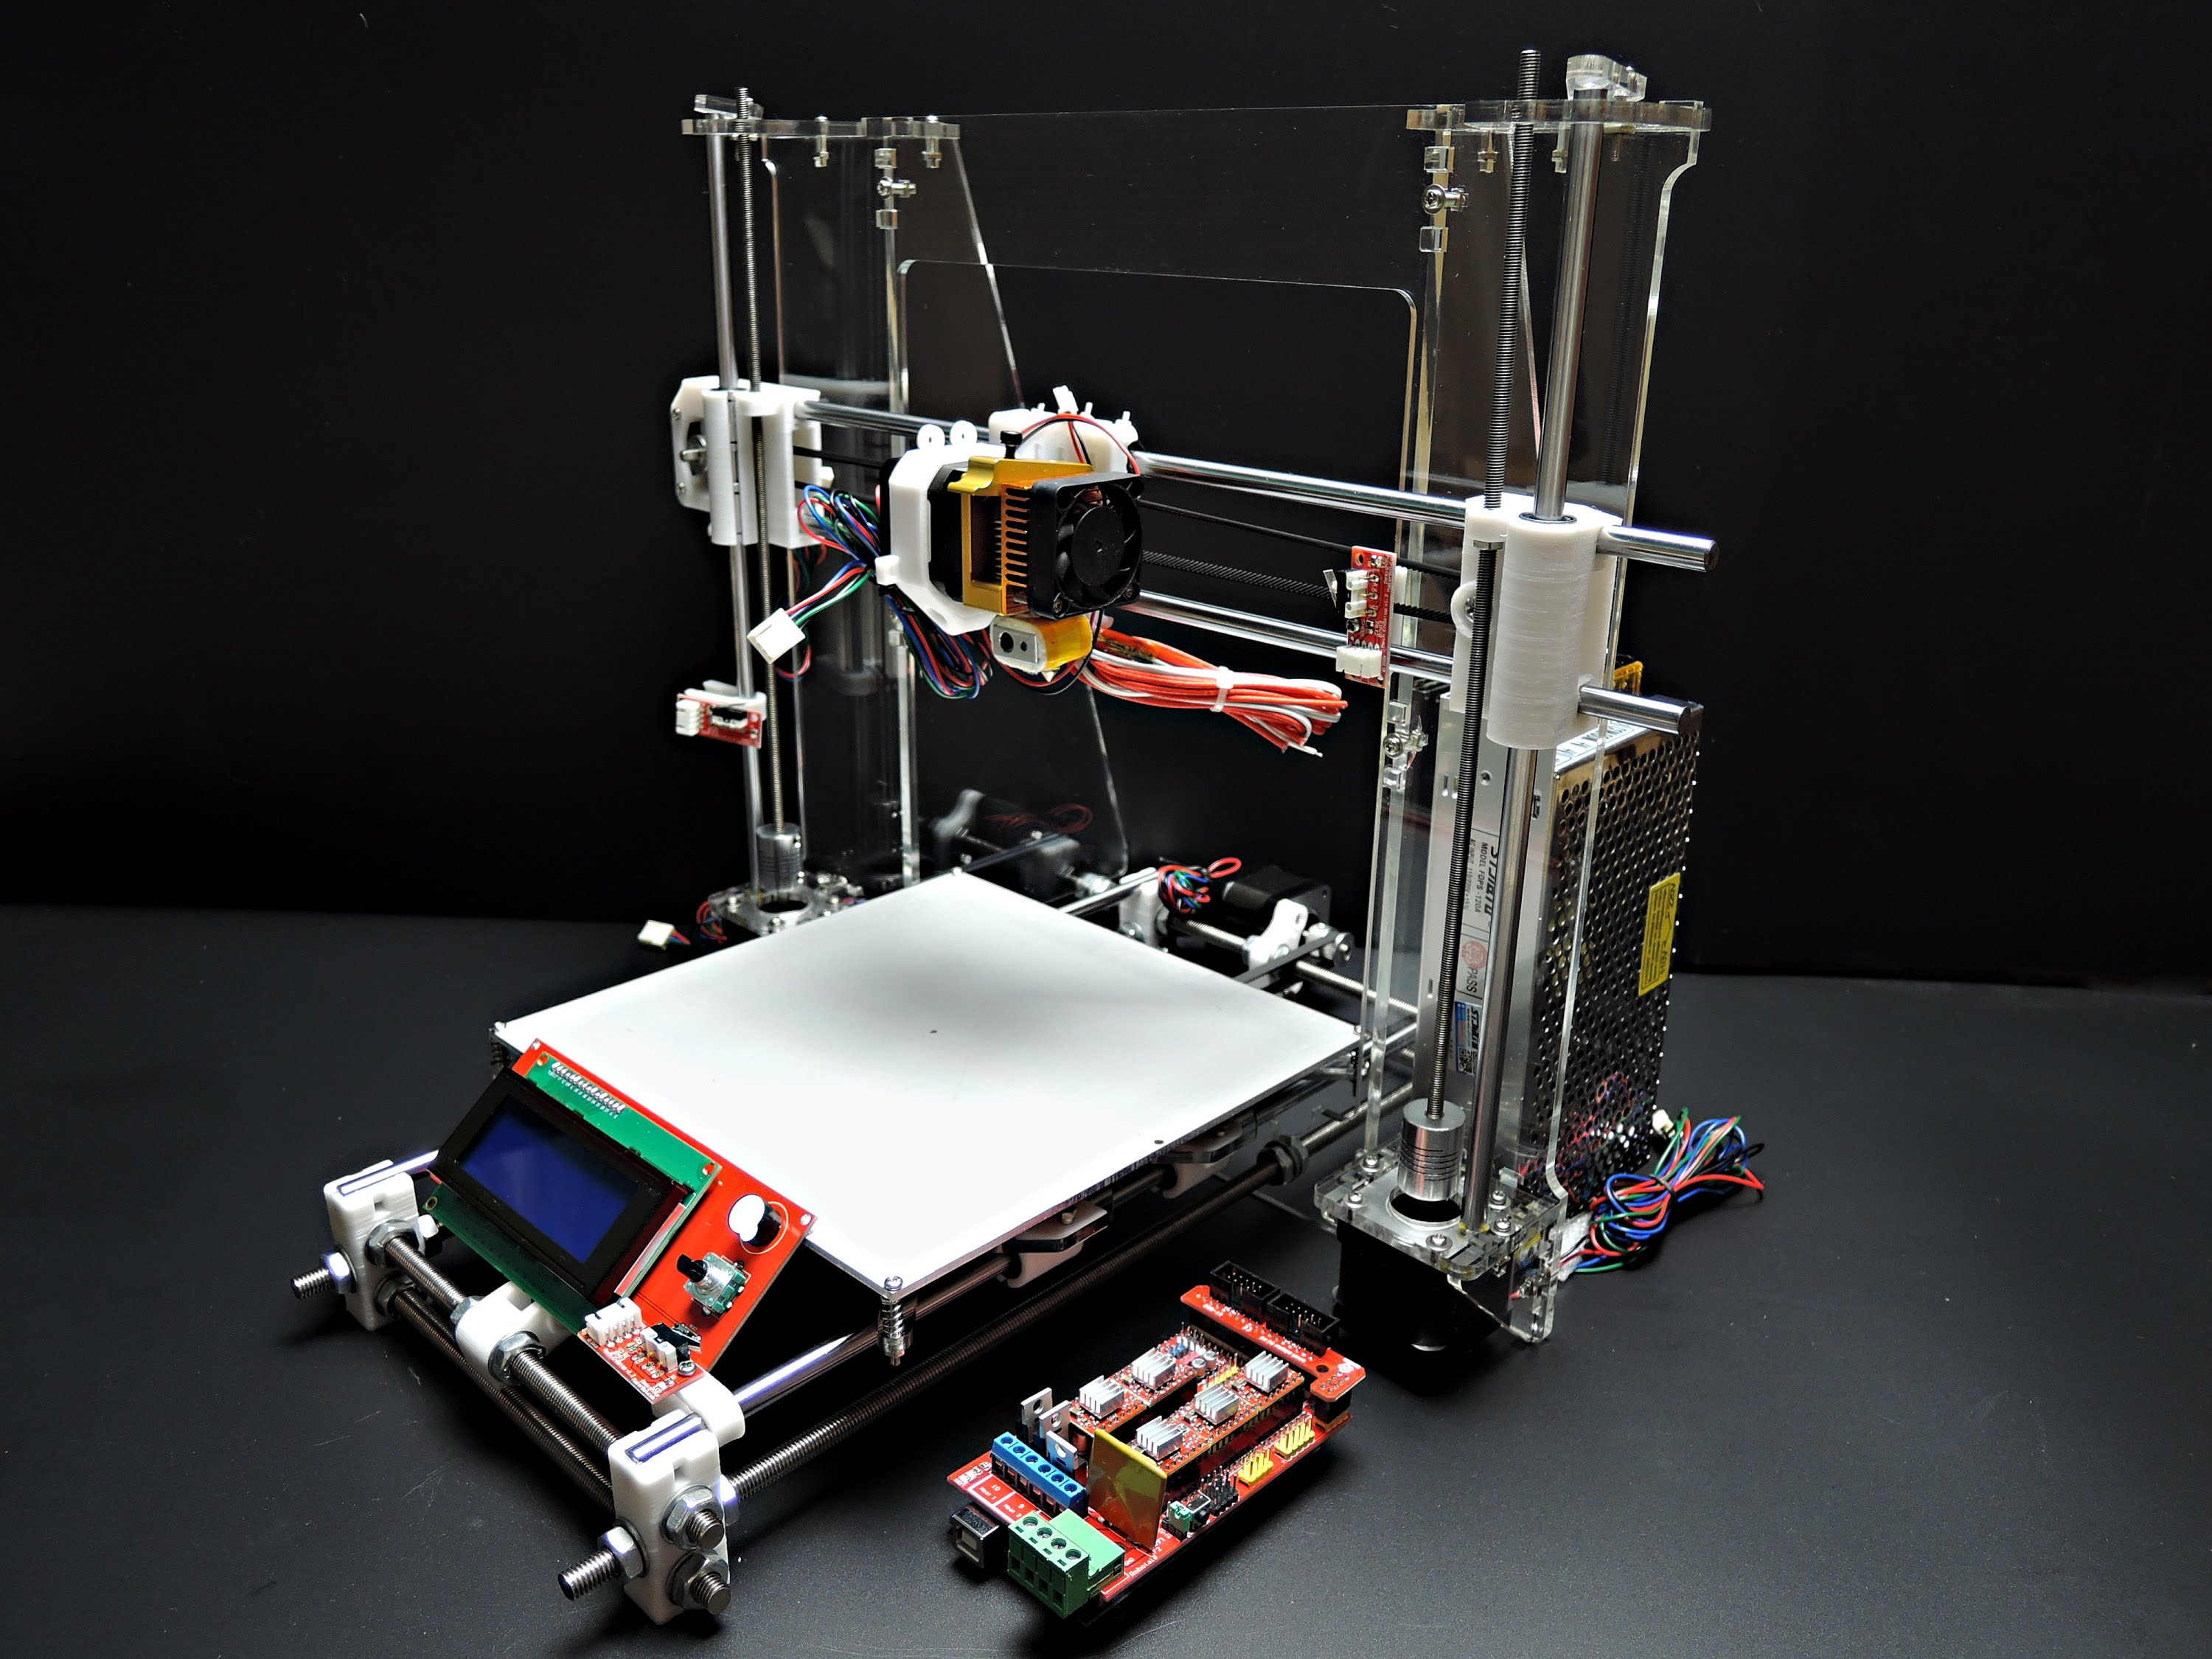 Sintron Reprap Prusa I3 3D-Printer – review and first